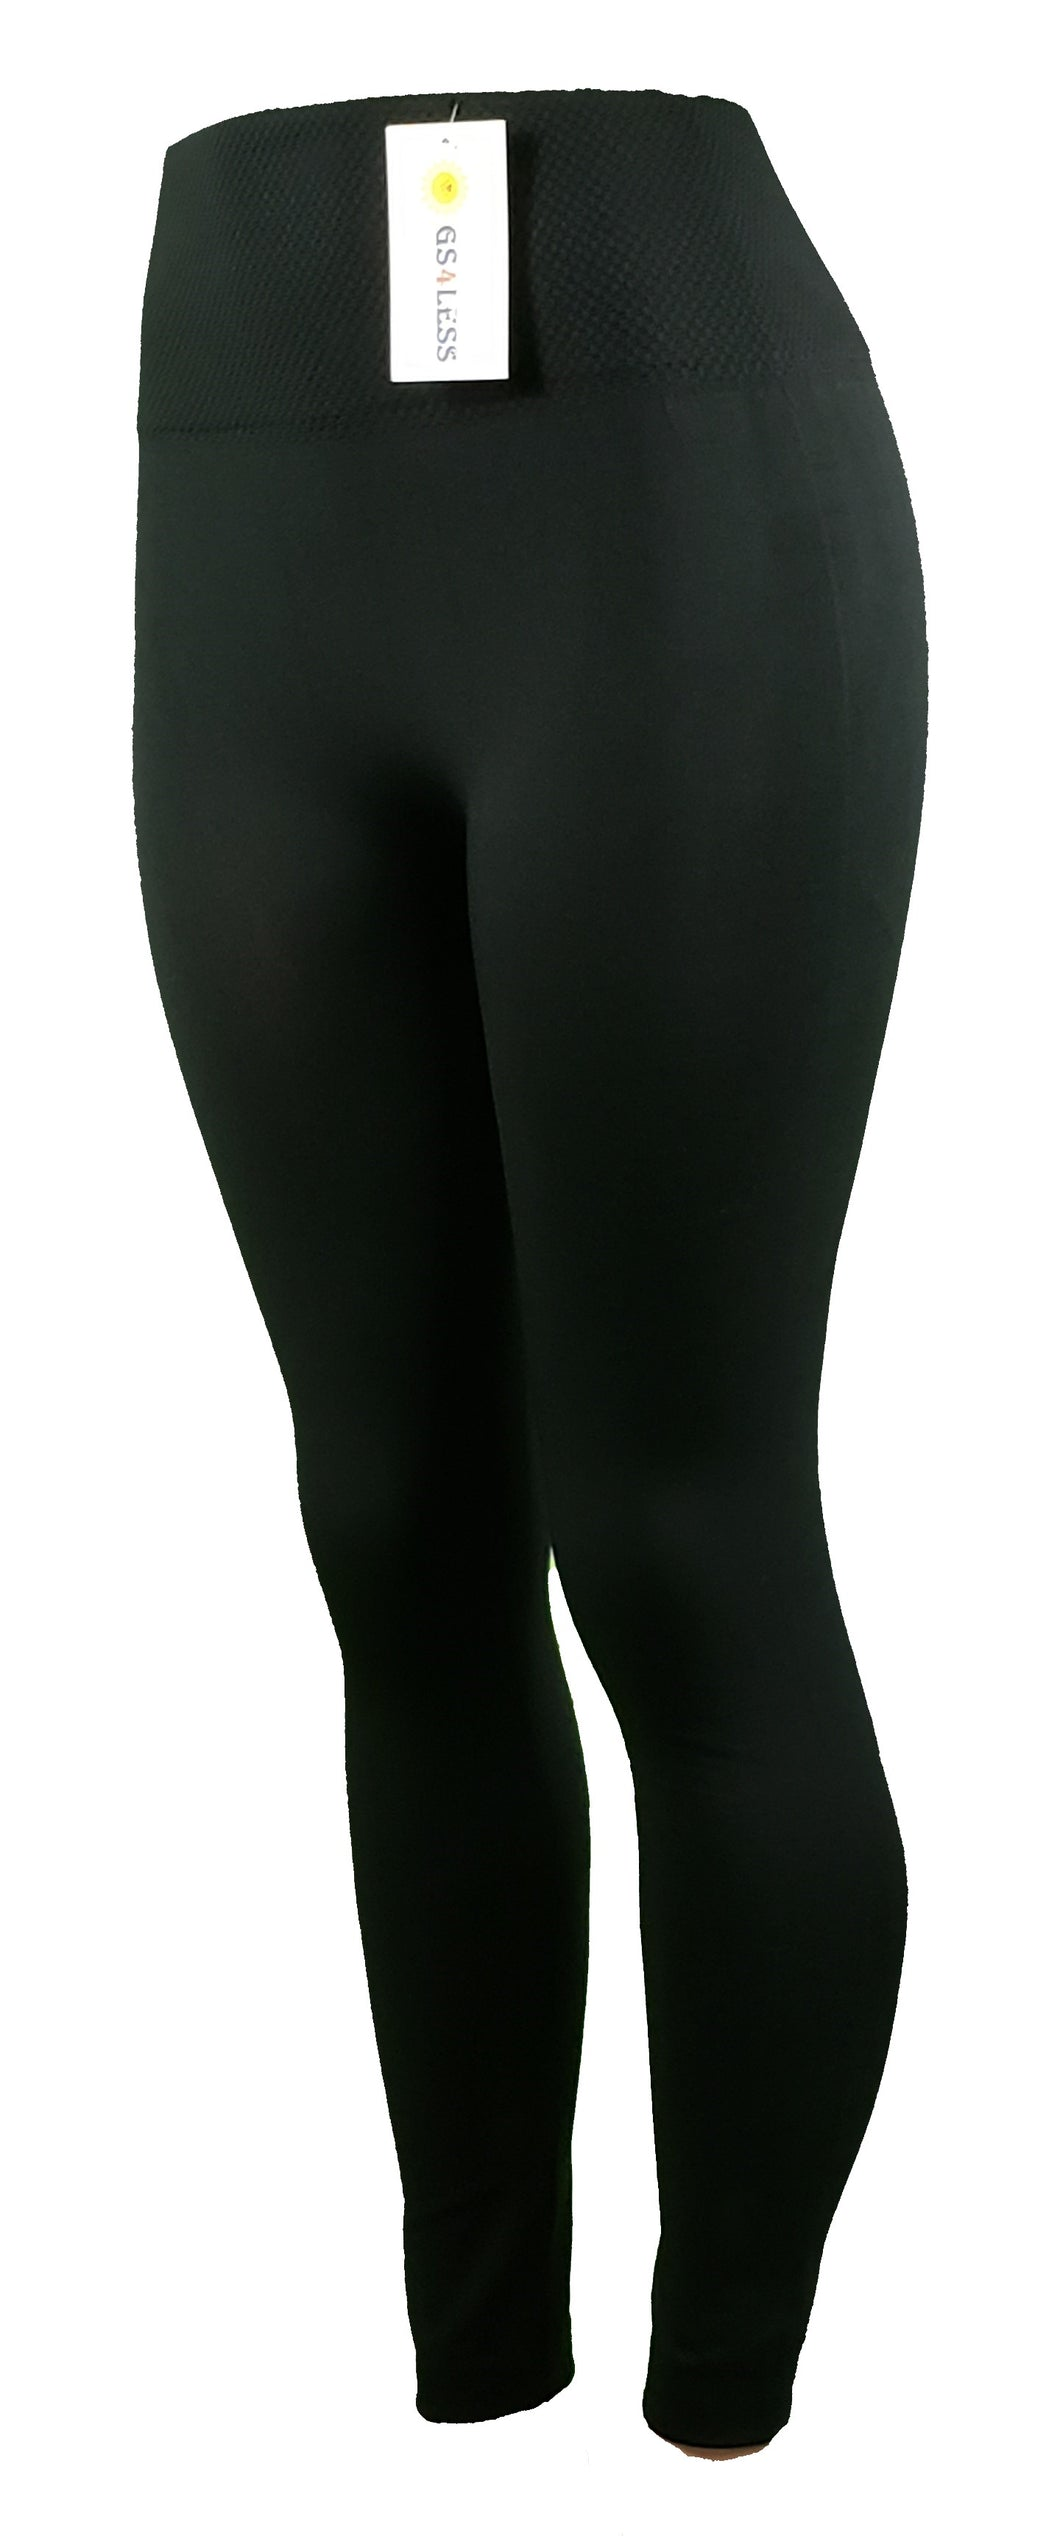 Black athletic one-size-fits-most leggings - GS4LESS